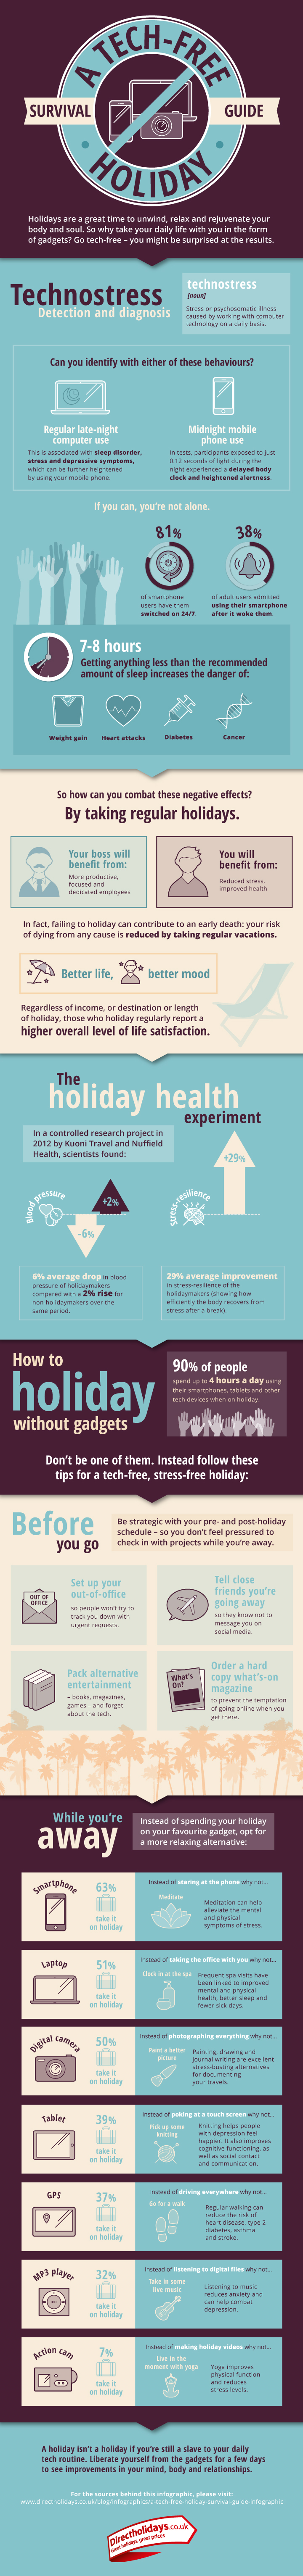 A Tech Free Holiday Survival Guide [Infographic]